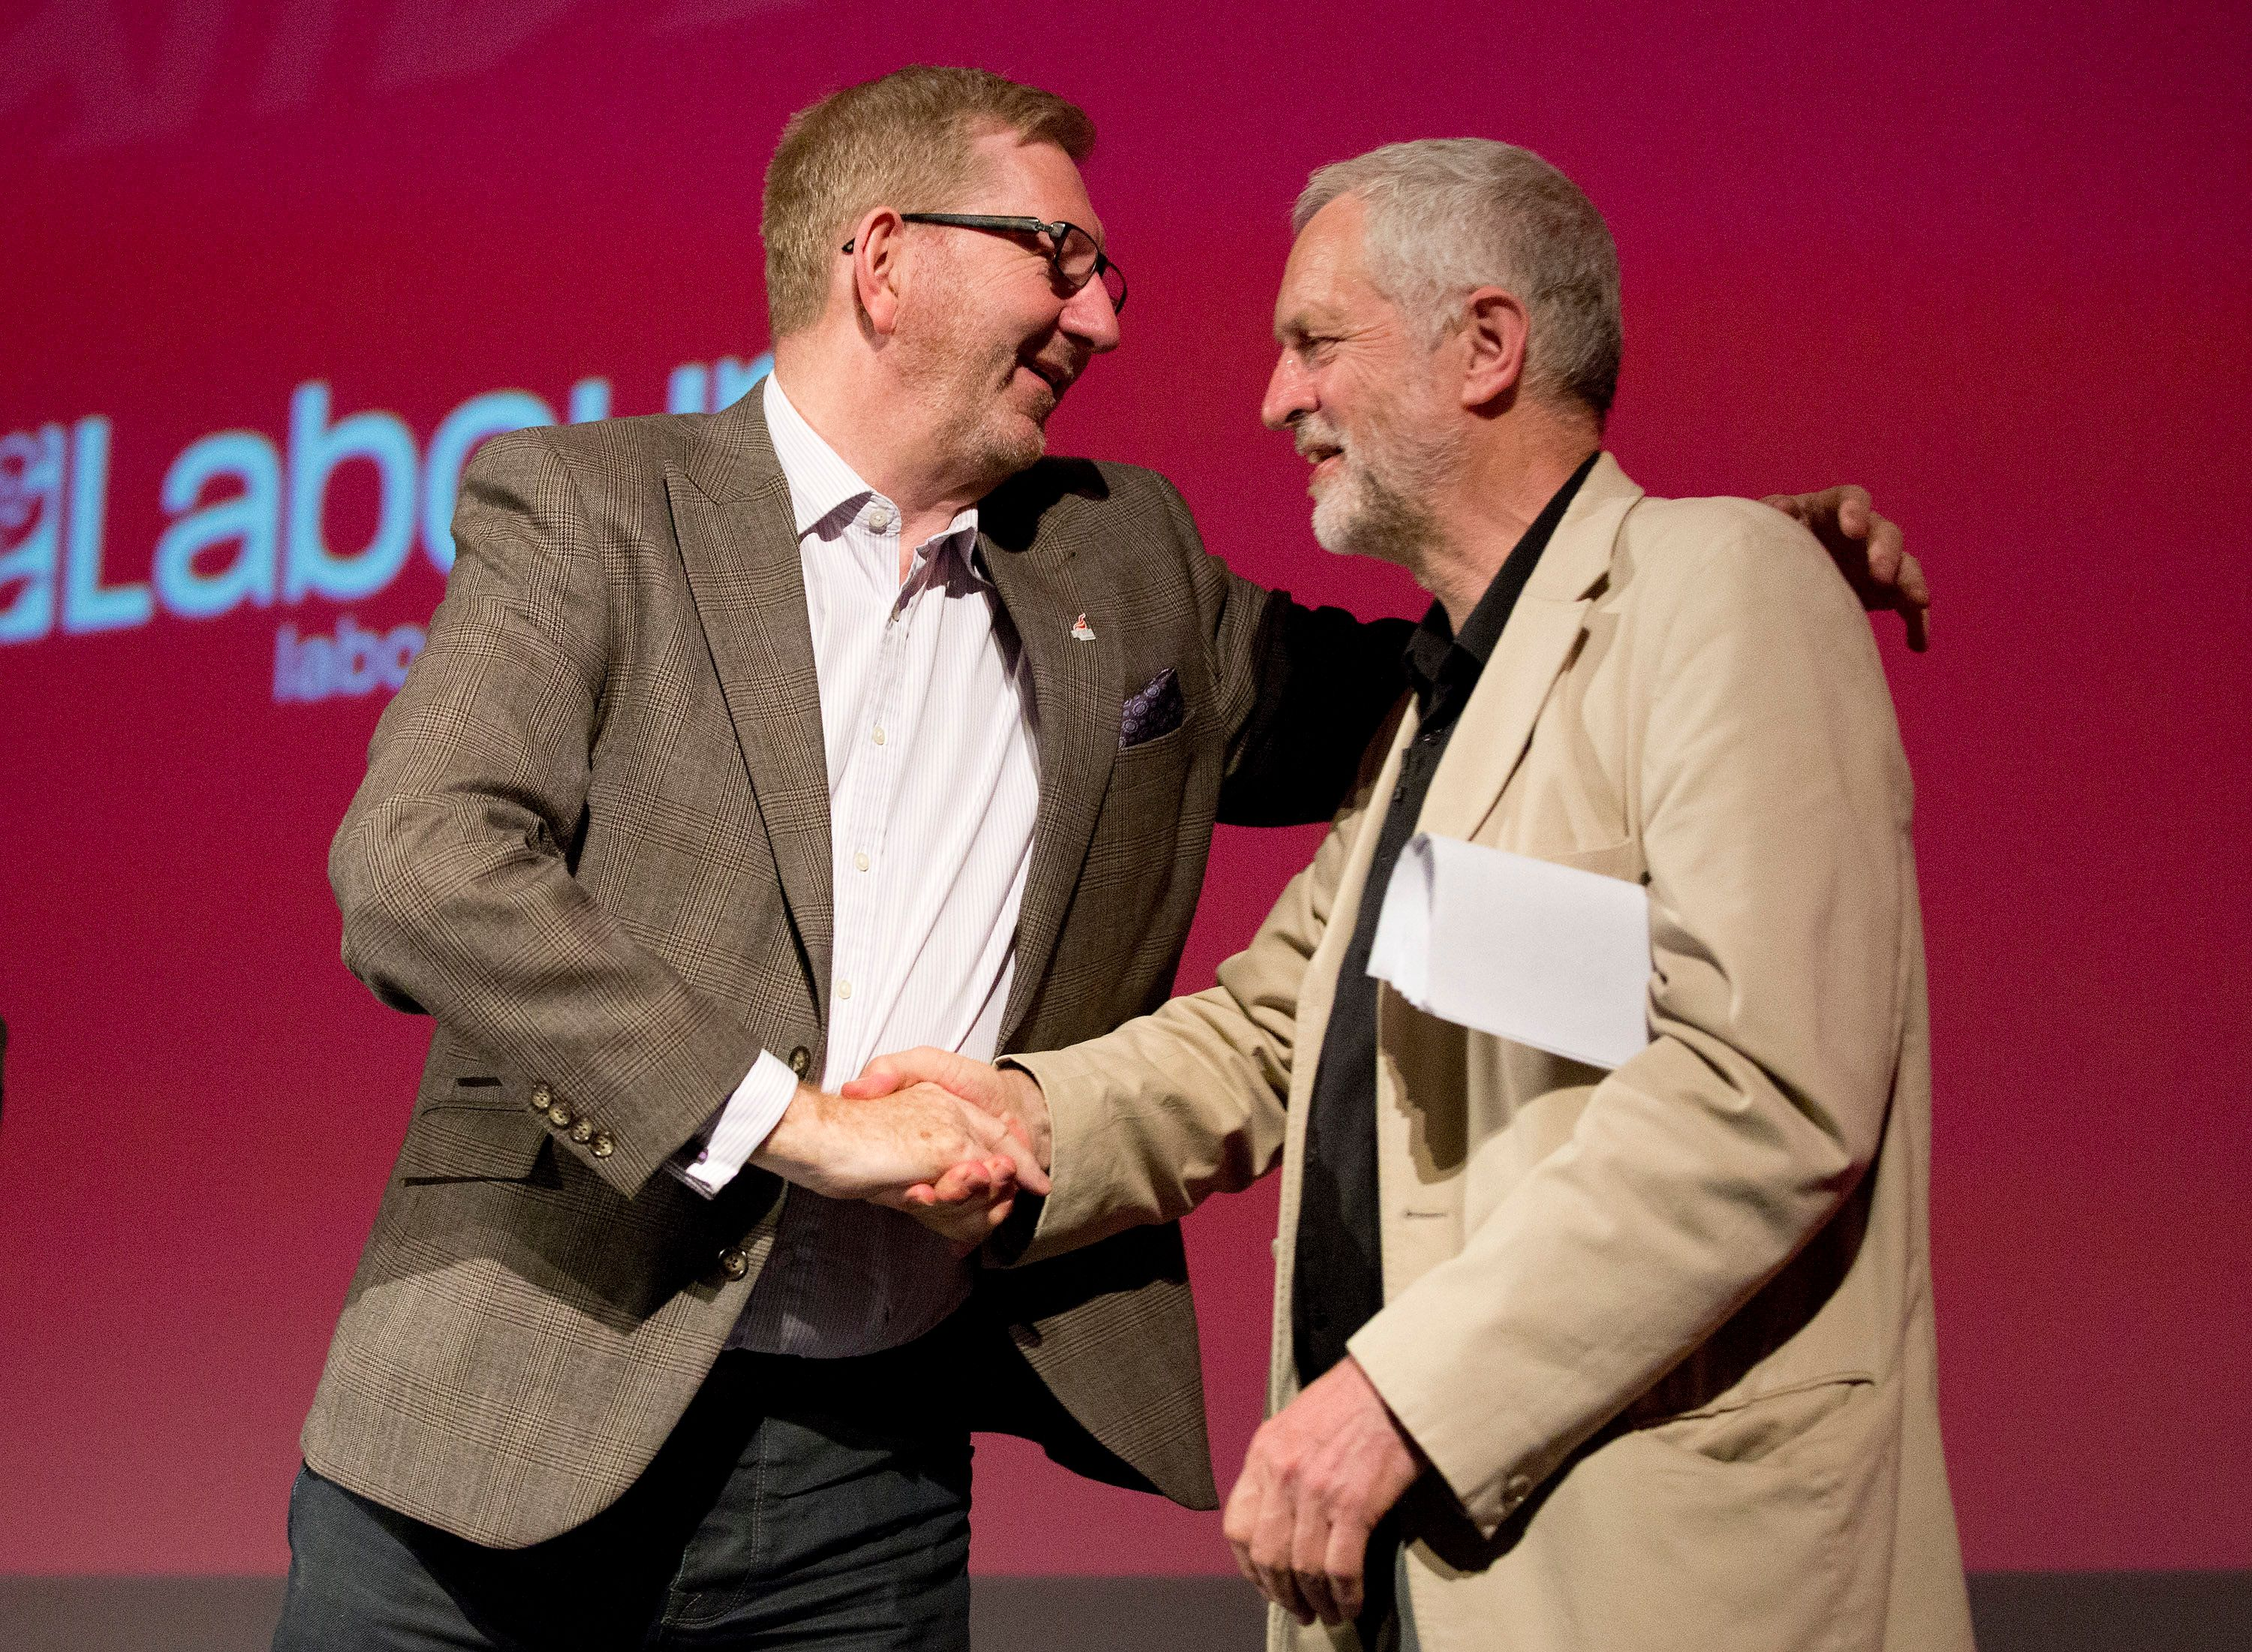 Corbyn Ally And Union Boss Len McCluskey Turns On Jewish Leaders After Wreath Row